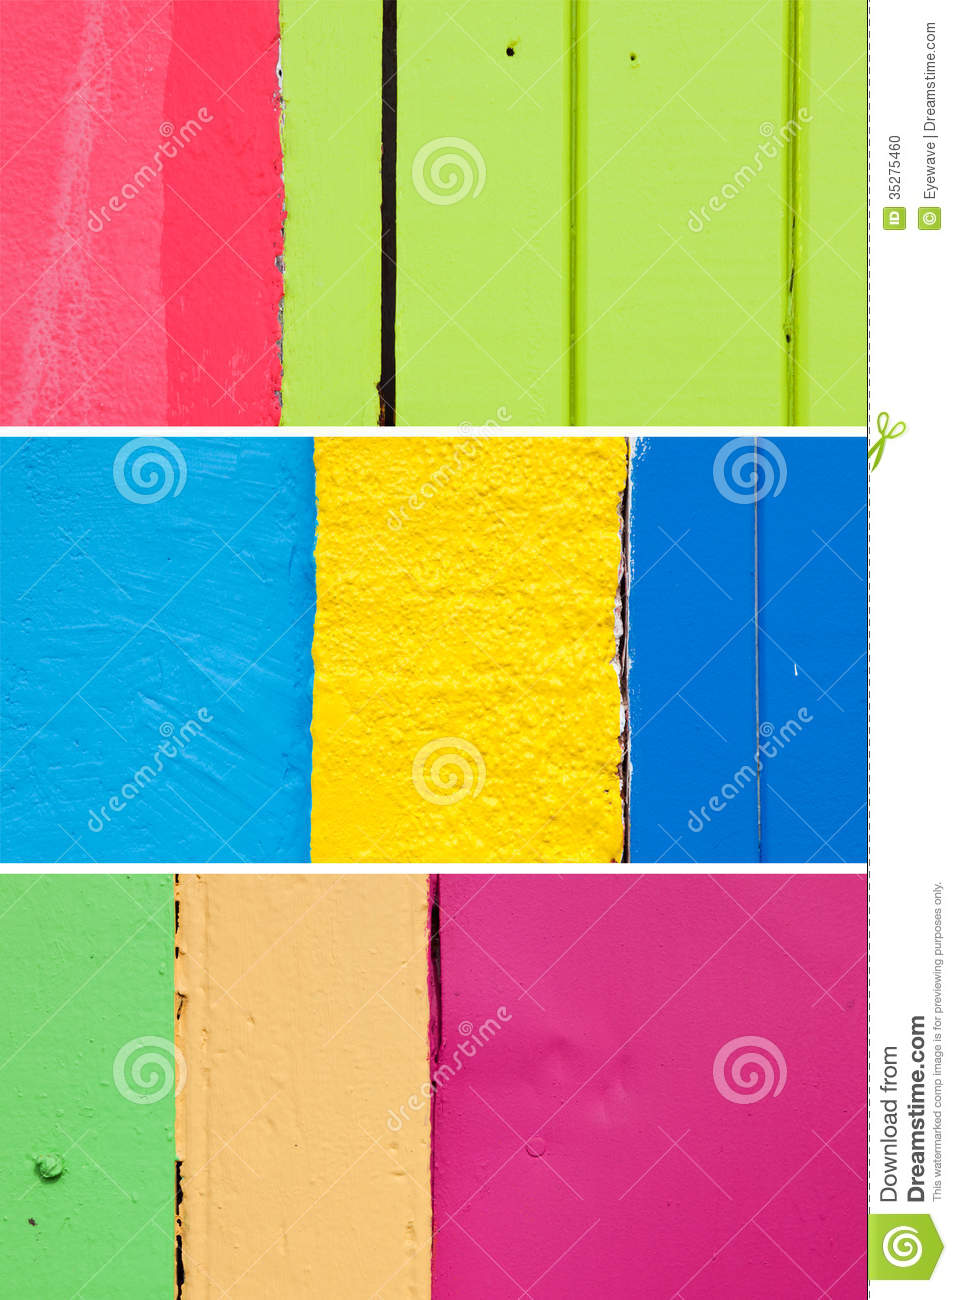 Caribbean Color Wall Backgrounds 1 Stock Photo - Image of green ...